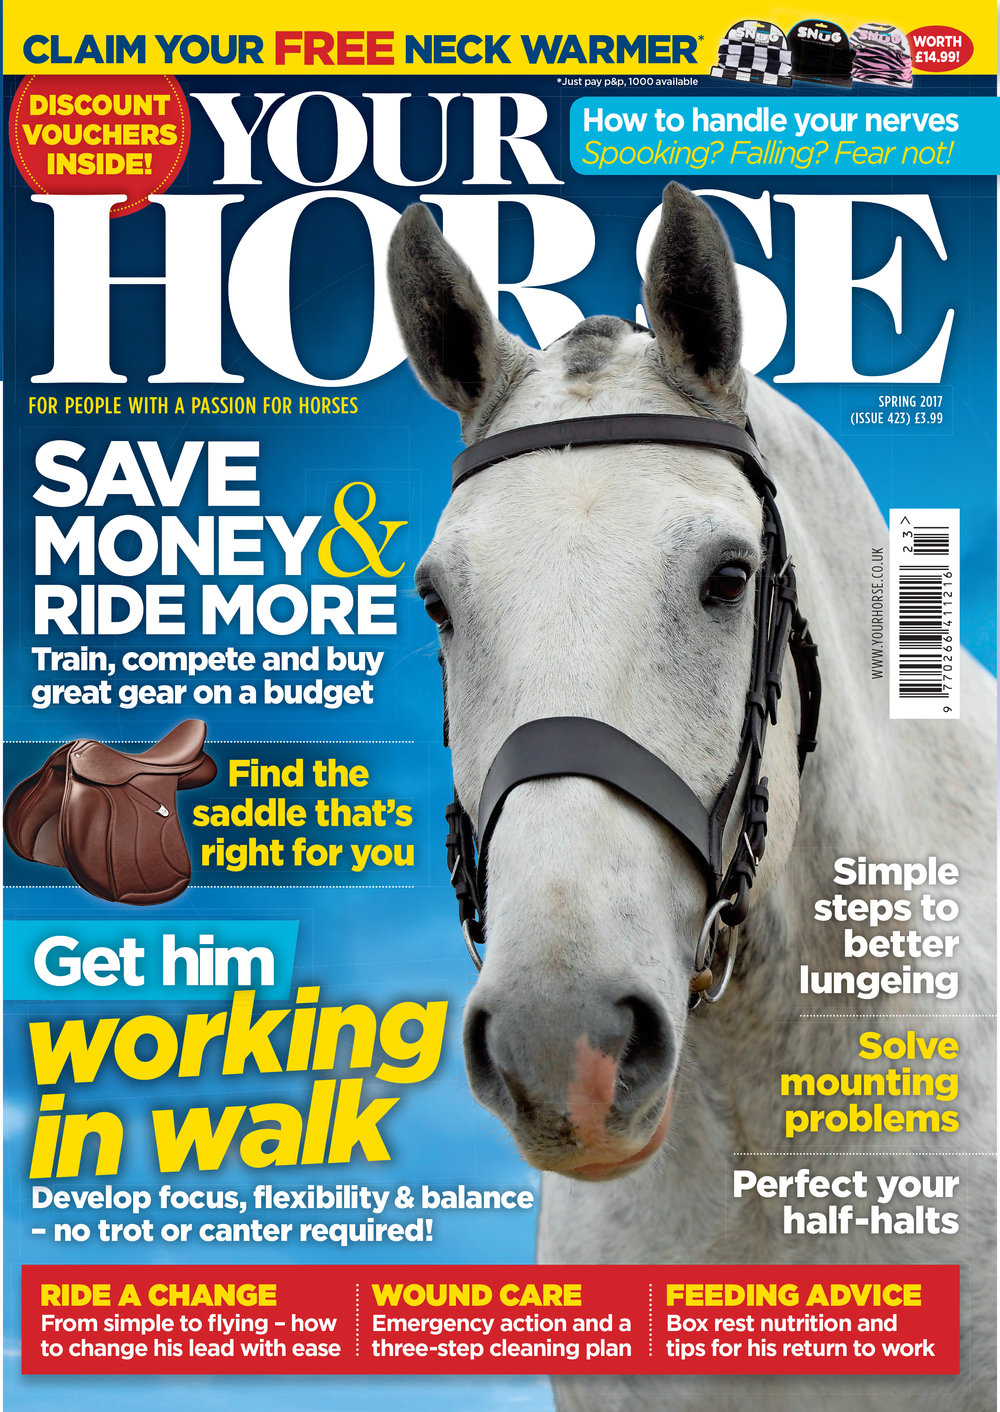 Your horse magazine spring issue cover